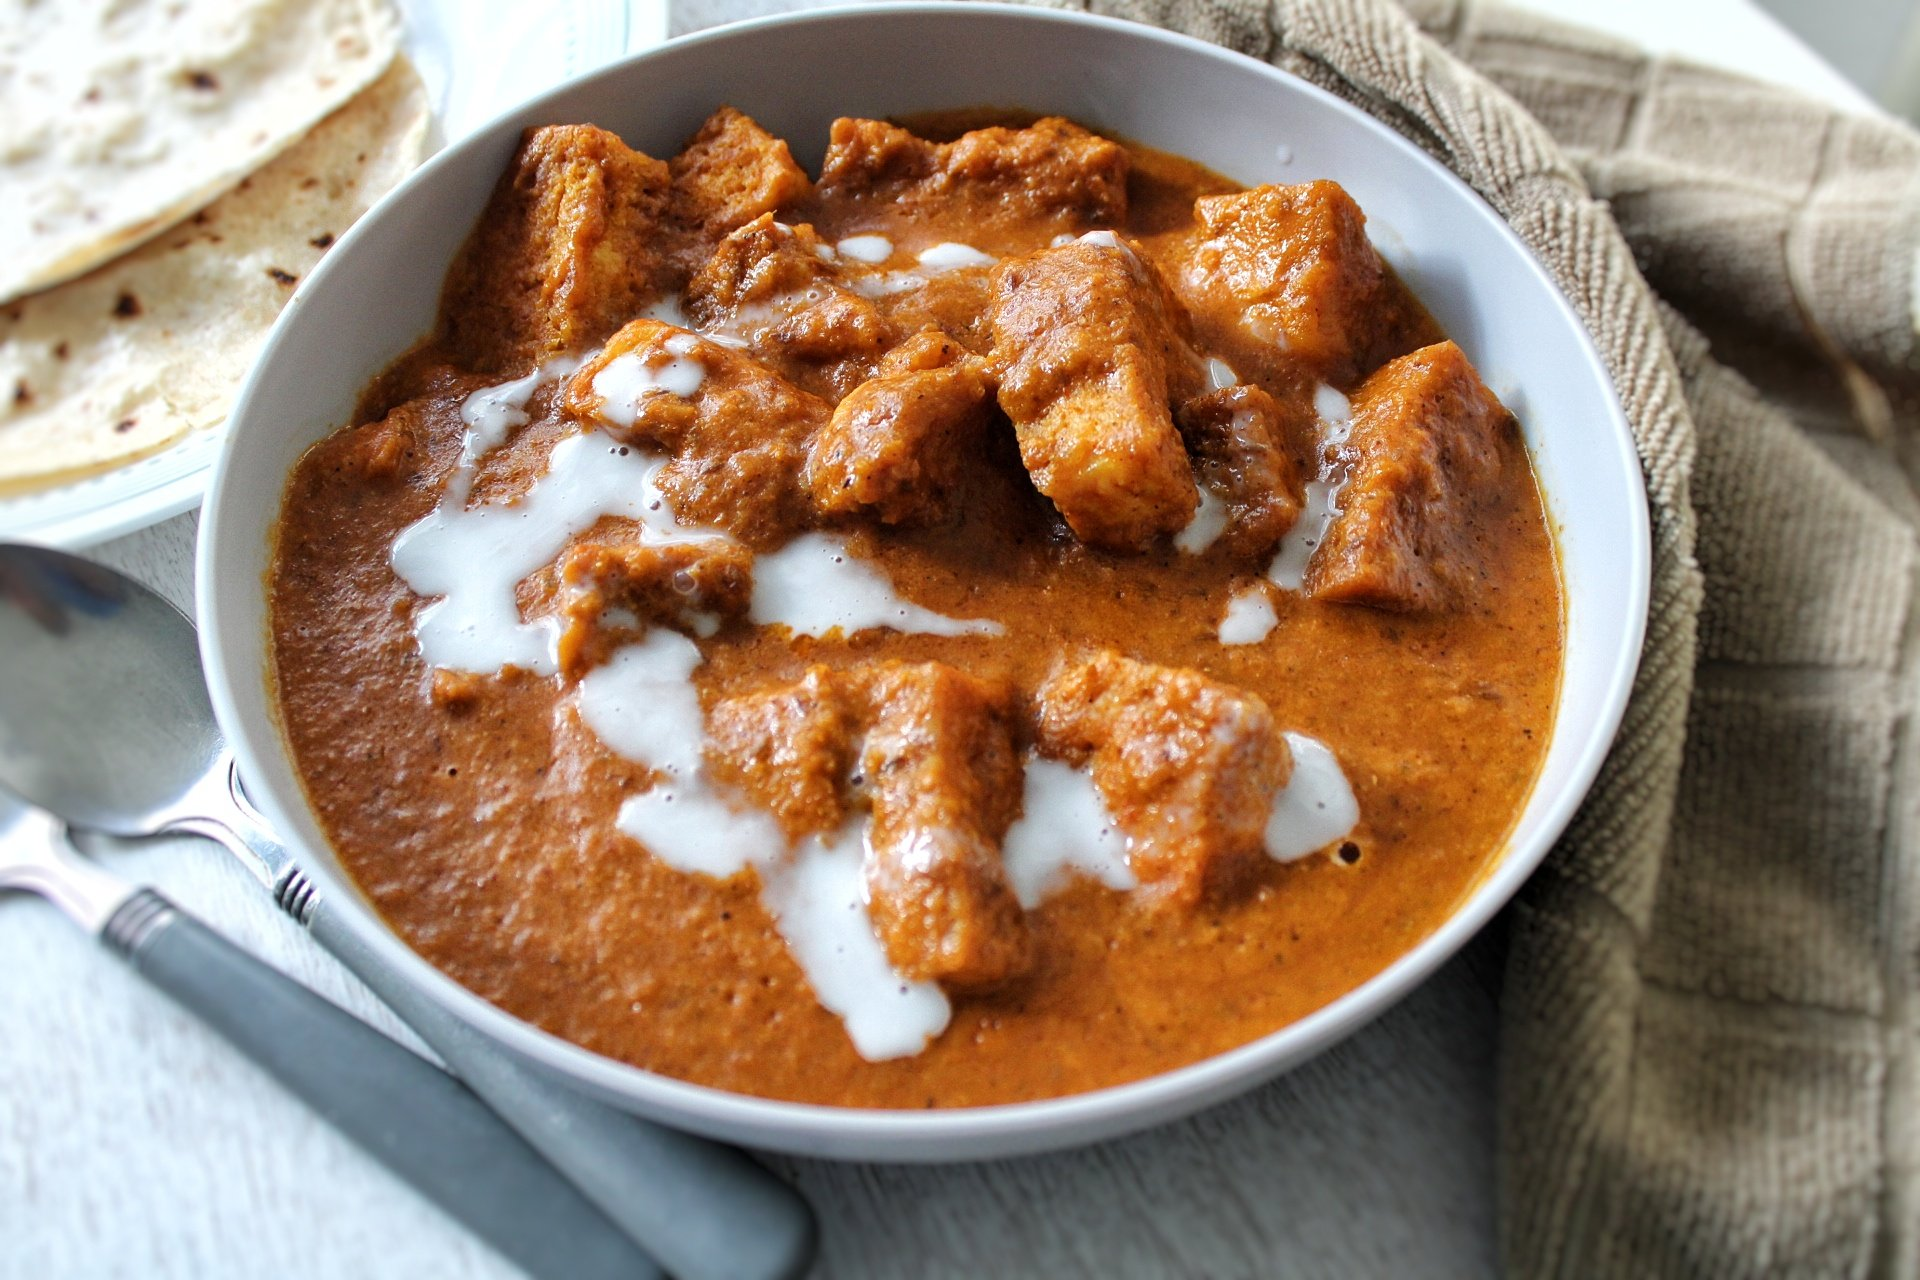 Meatless butter chicken in a gray bowl and side of roti